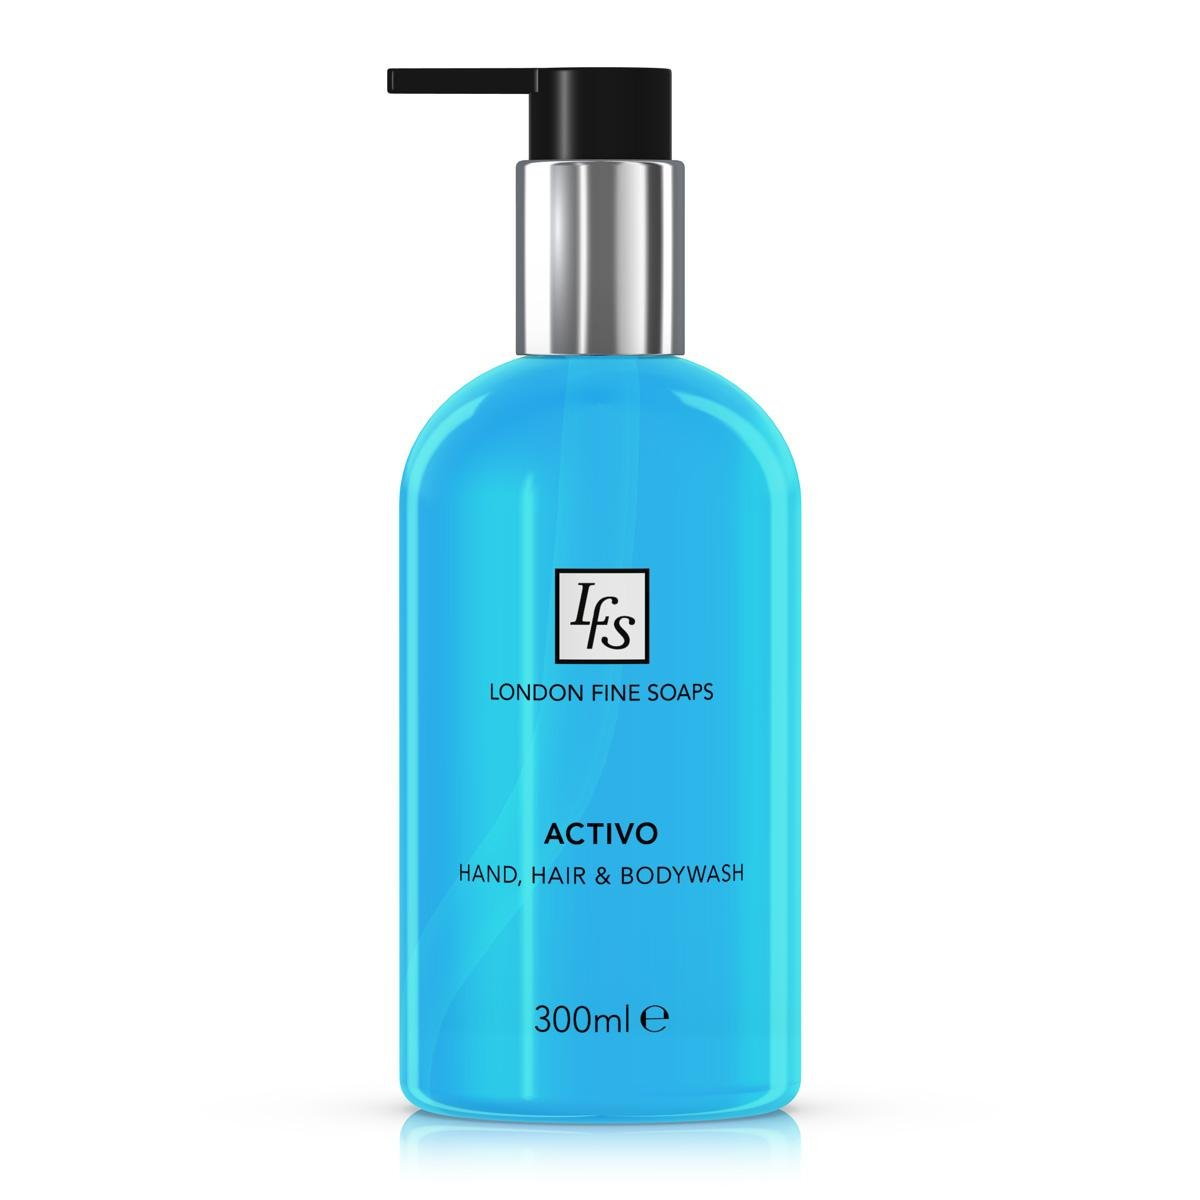 London Fine Soaps BYR205-03 Activo Hand, Hair and Body Wash, 300 mL (Pack of 6)